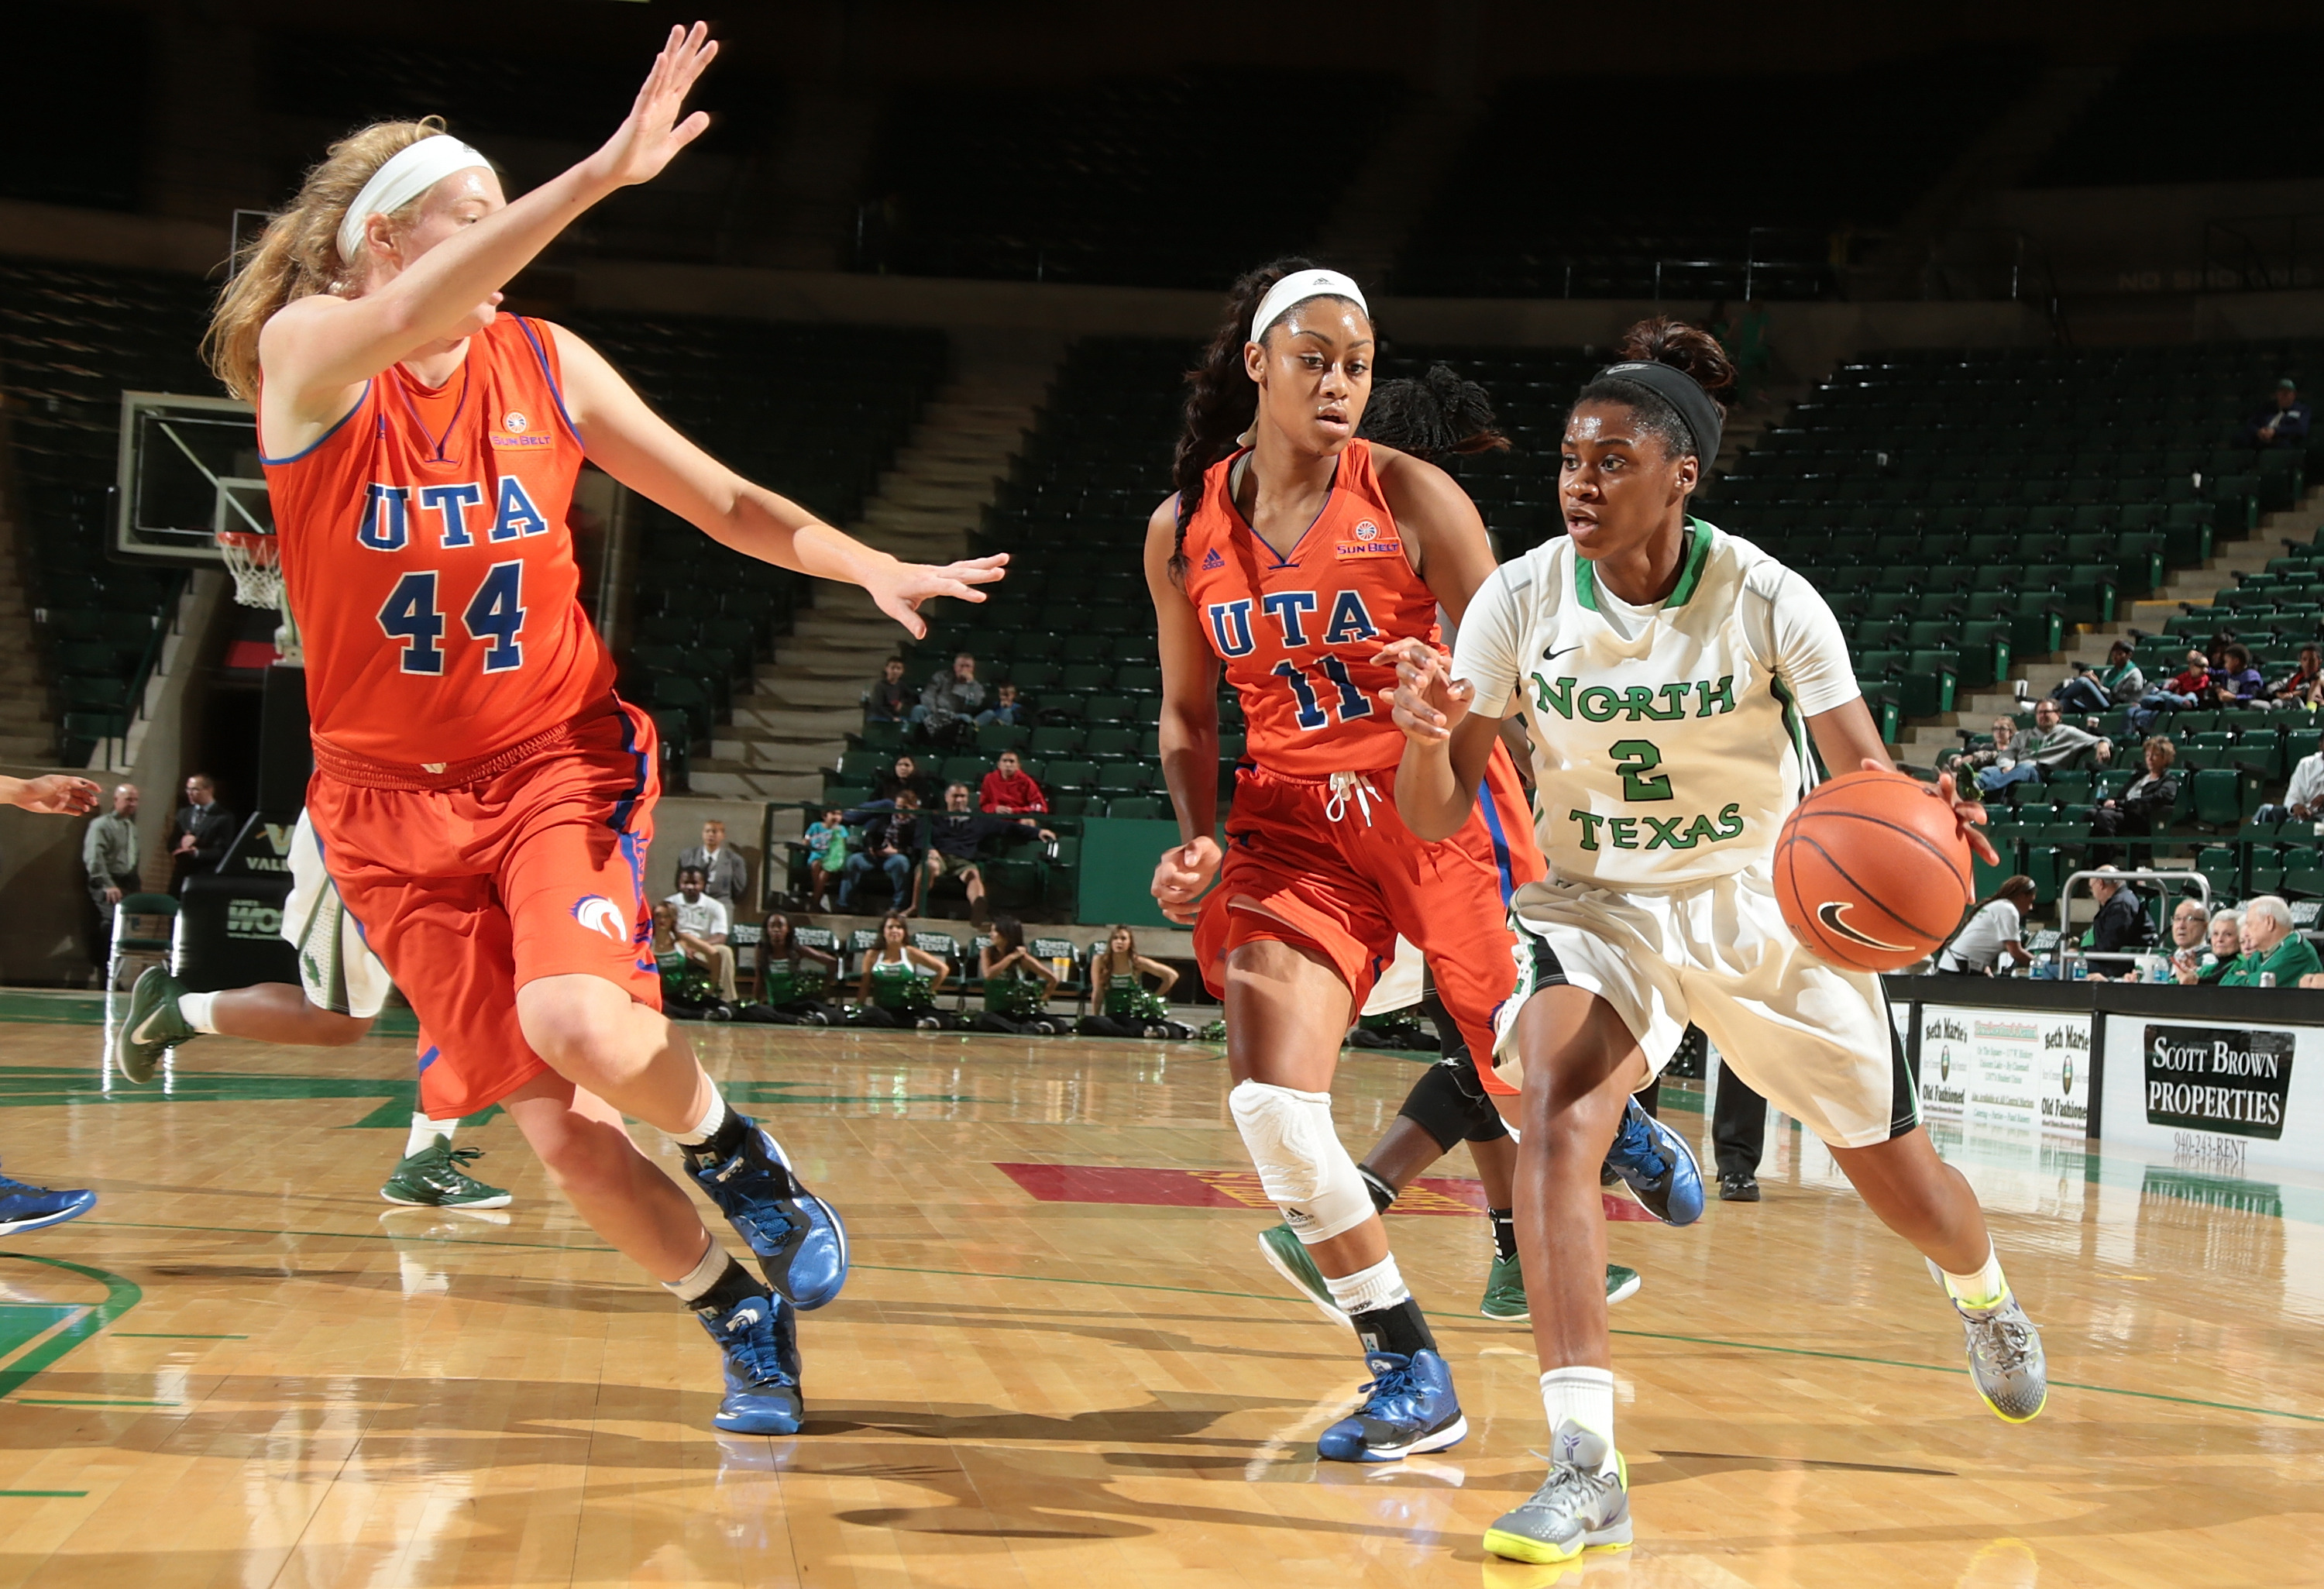 wholesale dealer b963c a0e0e Women's Basketball Ousted by UT Arlington - University of ...